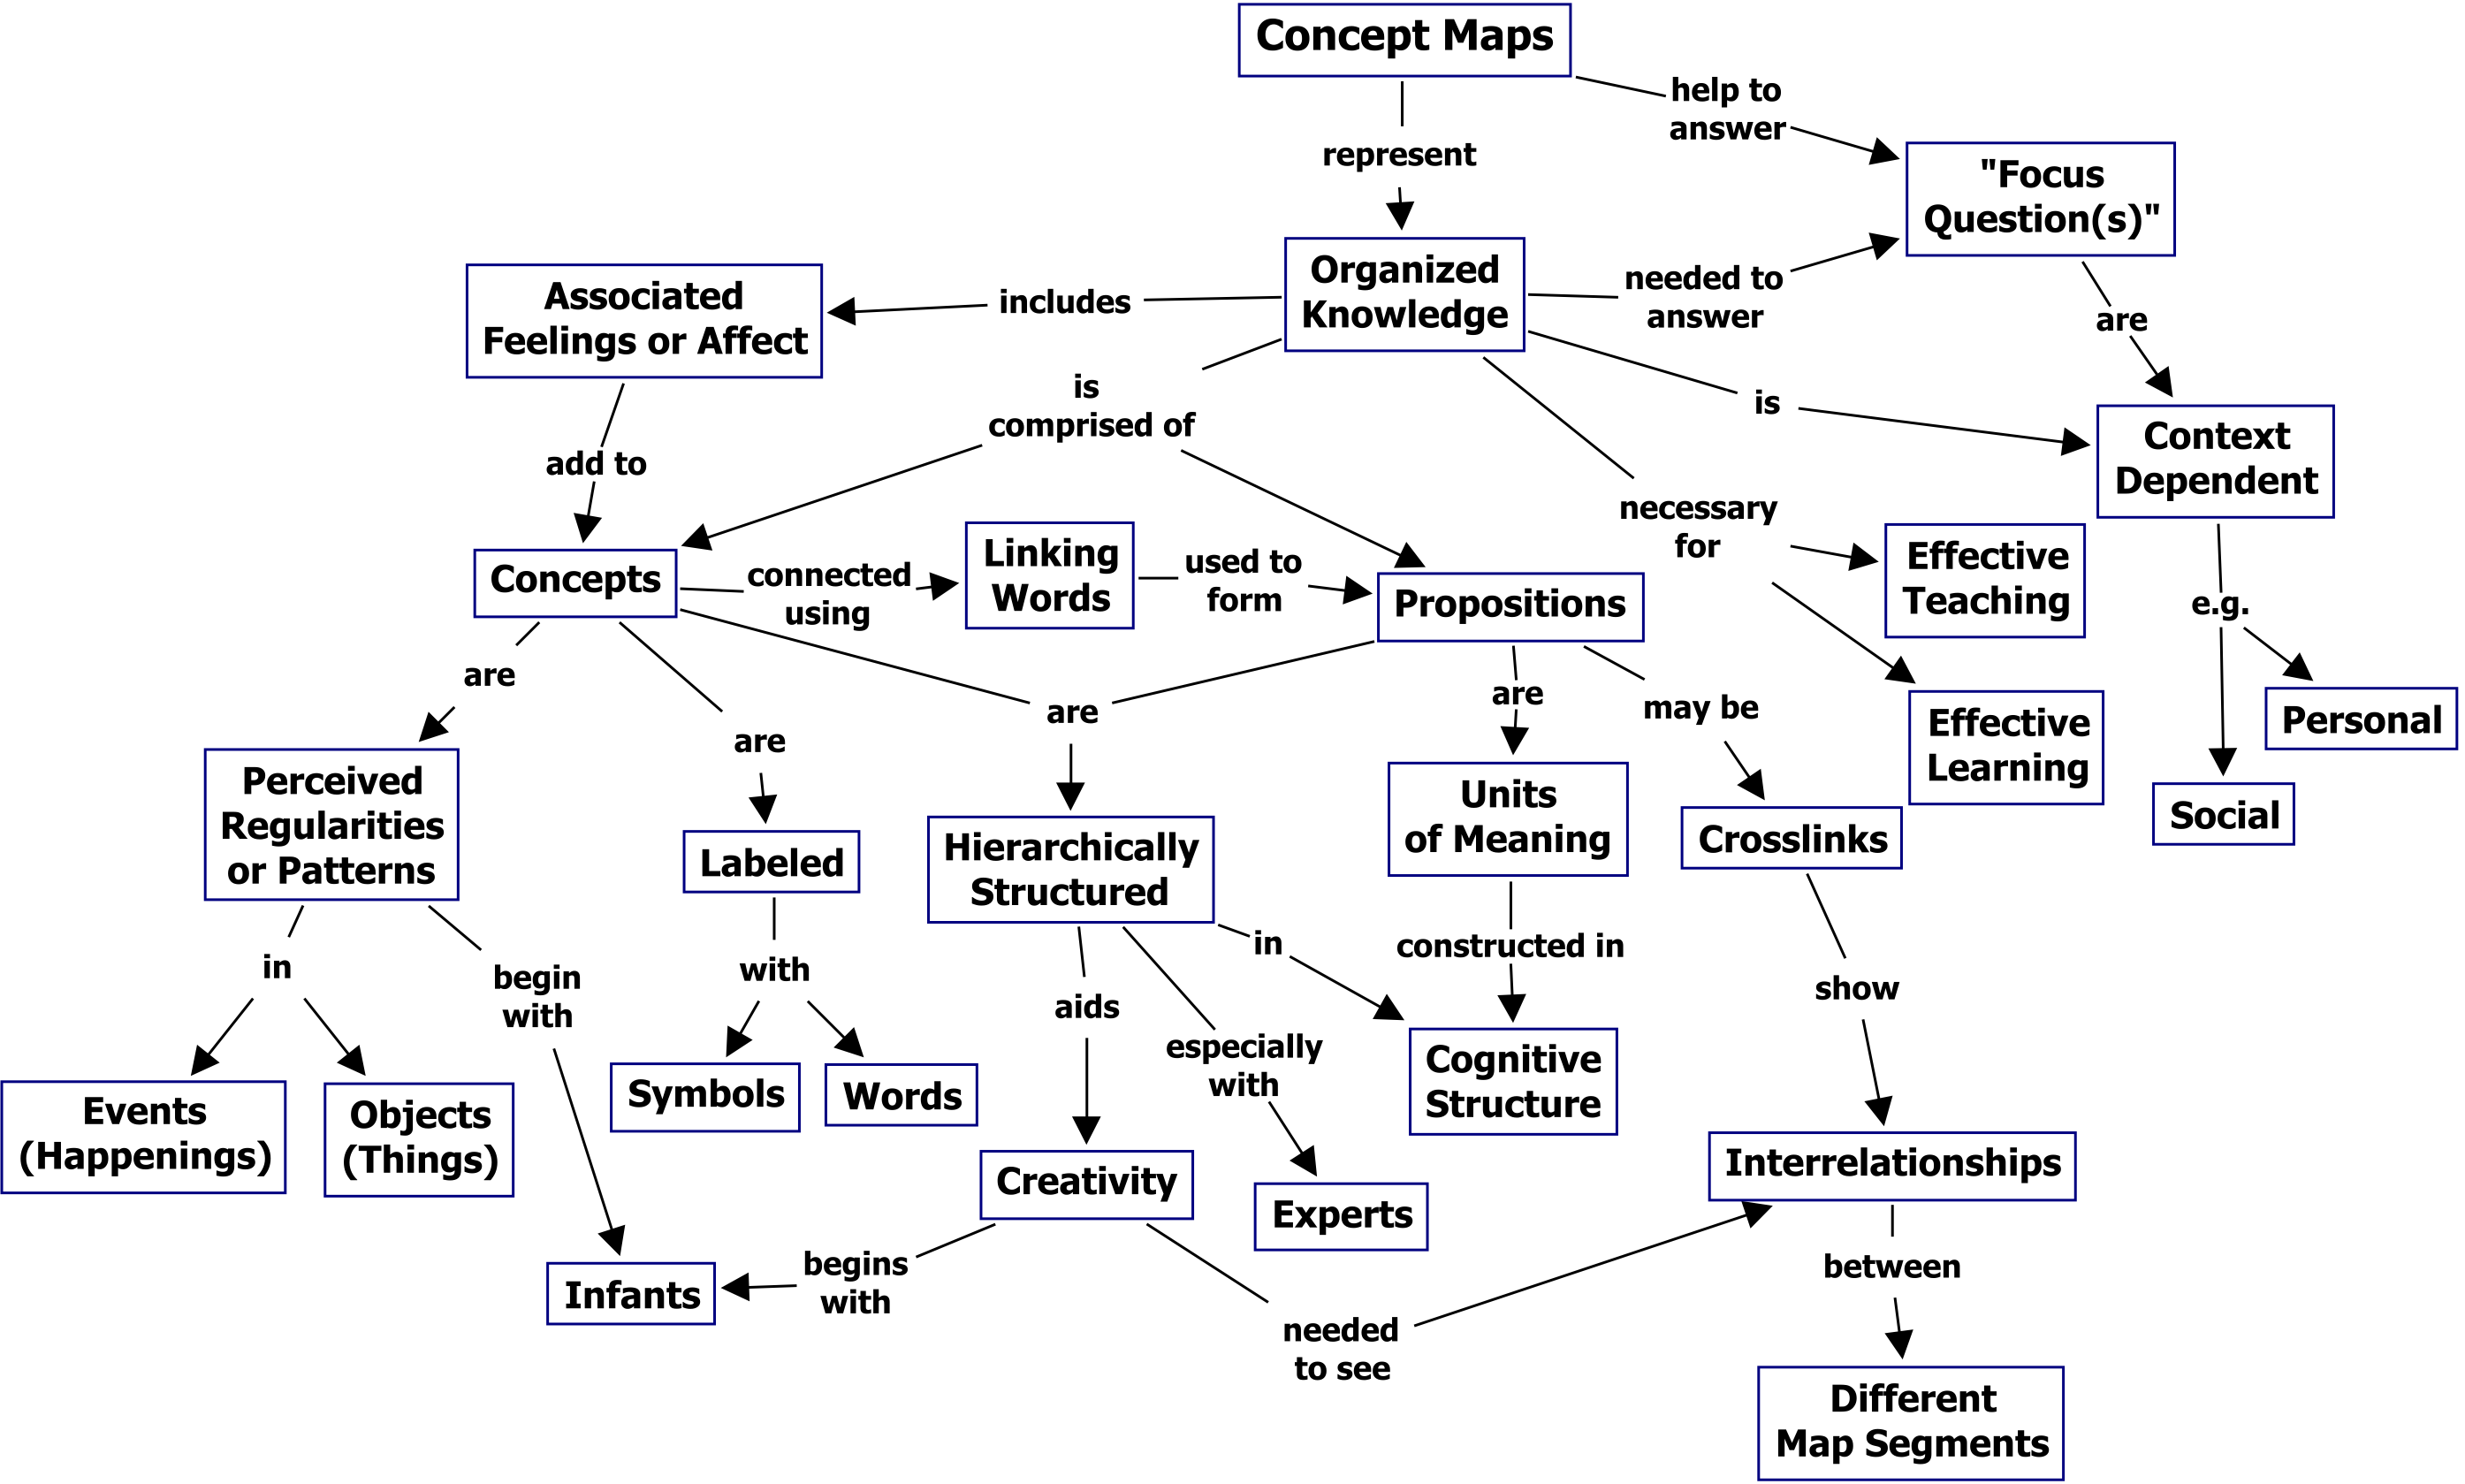 Figure 1. A concept map showing the key features of concept maps ...